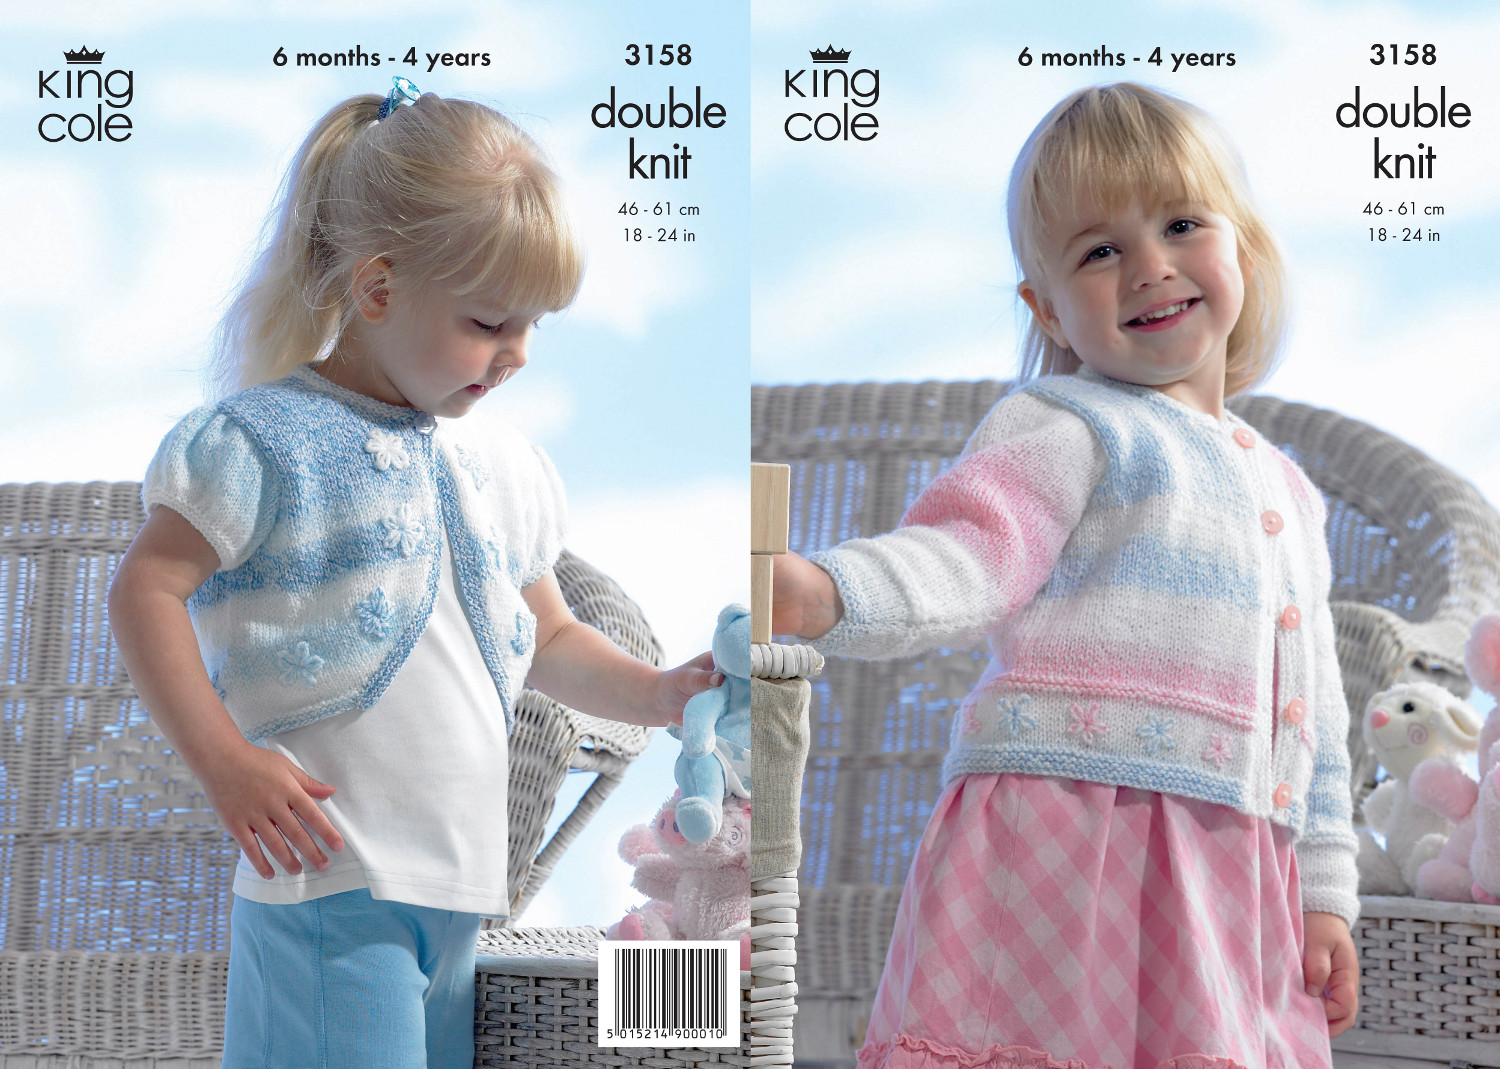 Double knitting pattern king cole girls cardigan bolero childs double knitting pattern king cole girls cardigan bolero childs knitted dk 3158 bankloansurffo Image collections